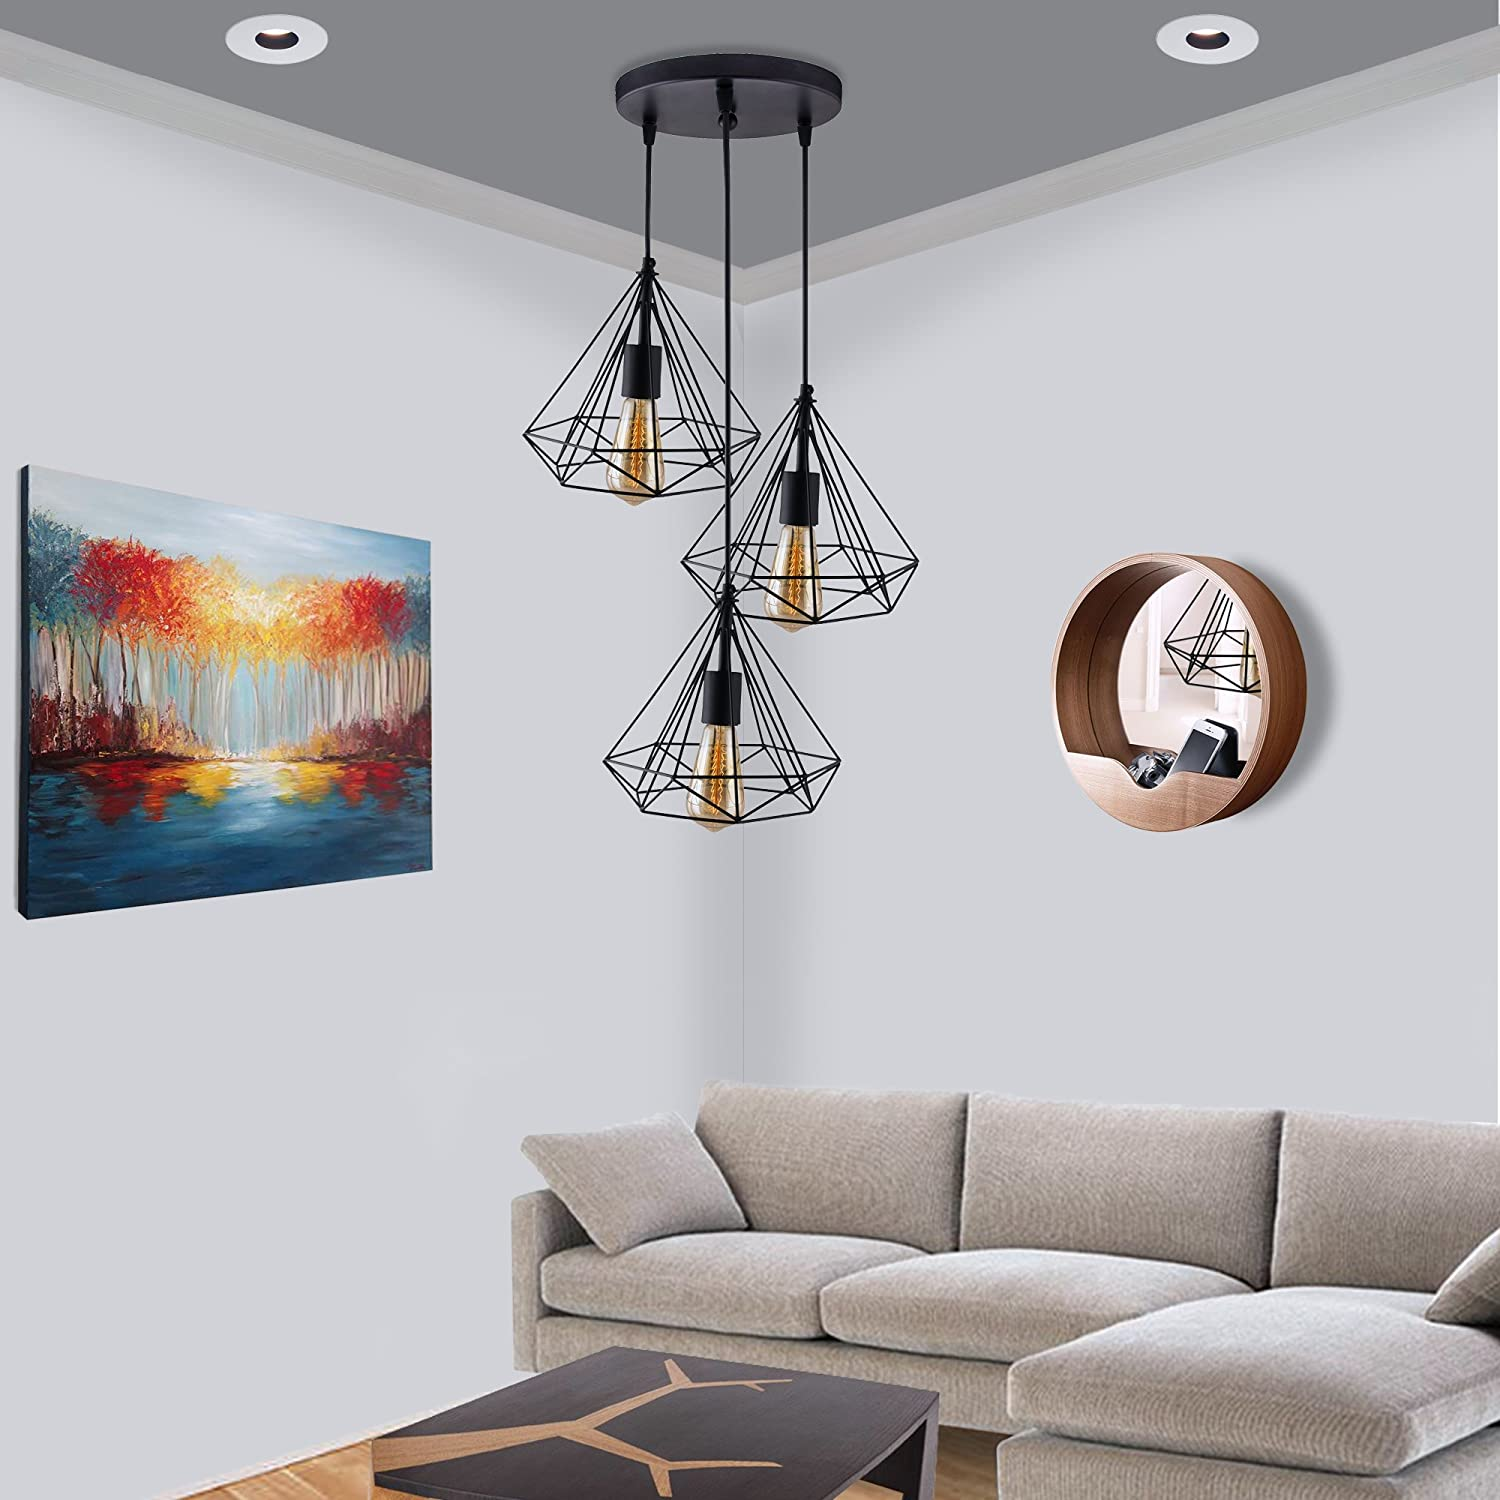 Homesake 3-Lights Round Cluster Chandelier Black Diamond Hanging Pendant Light with Braided Cord